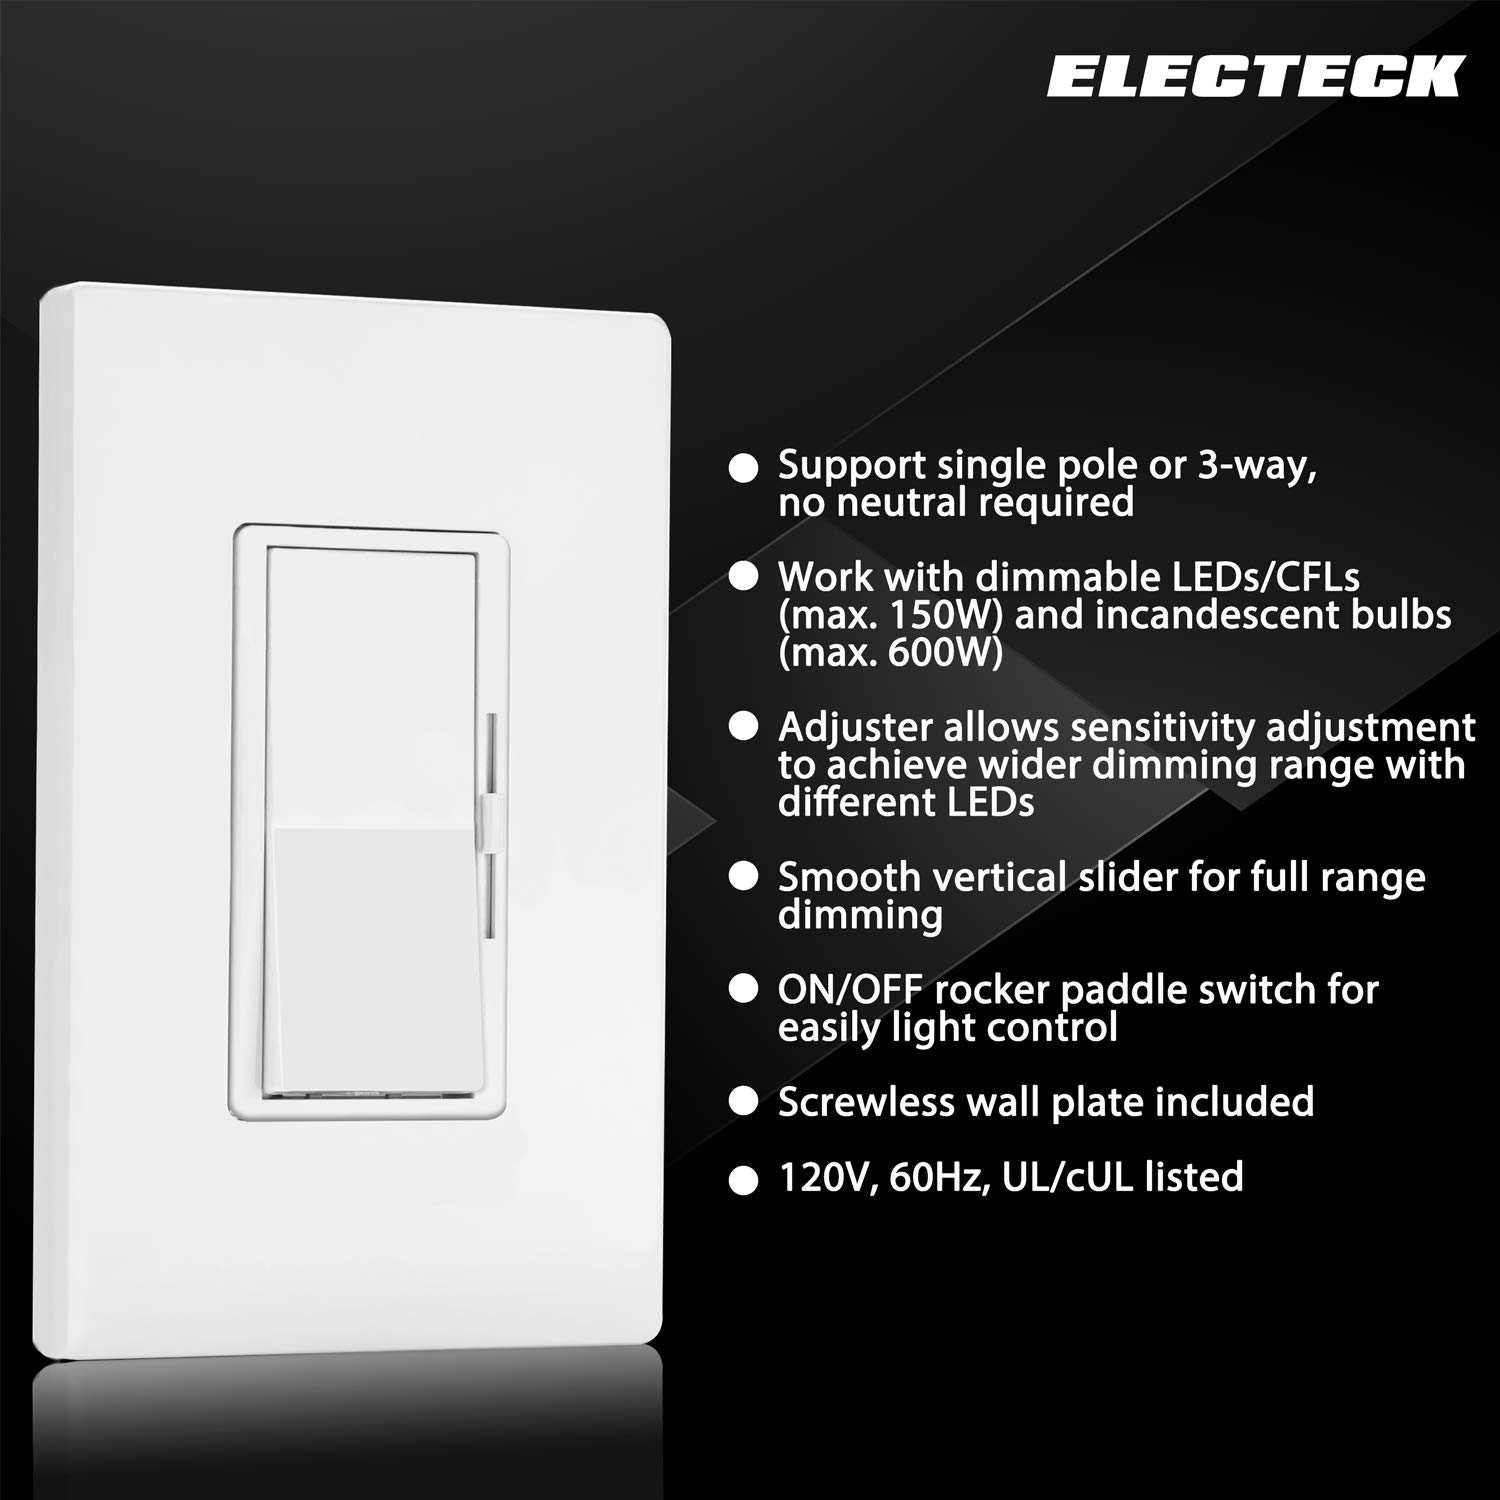 4 Pack - ELECTECK Single Pole/3 Way Dimmer Light Switch for Dimmable LED/Halogen/Incandescent Bulbs, Universal Lighting Control, Screwless Wallplate, UL Listed, White: Industrial & Scientific